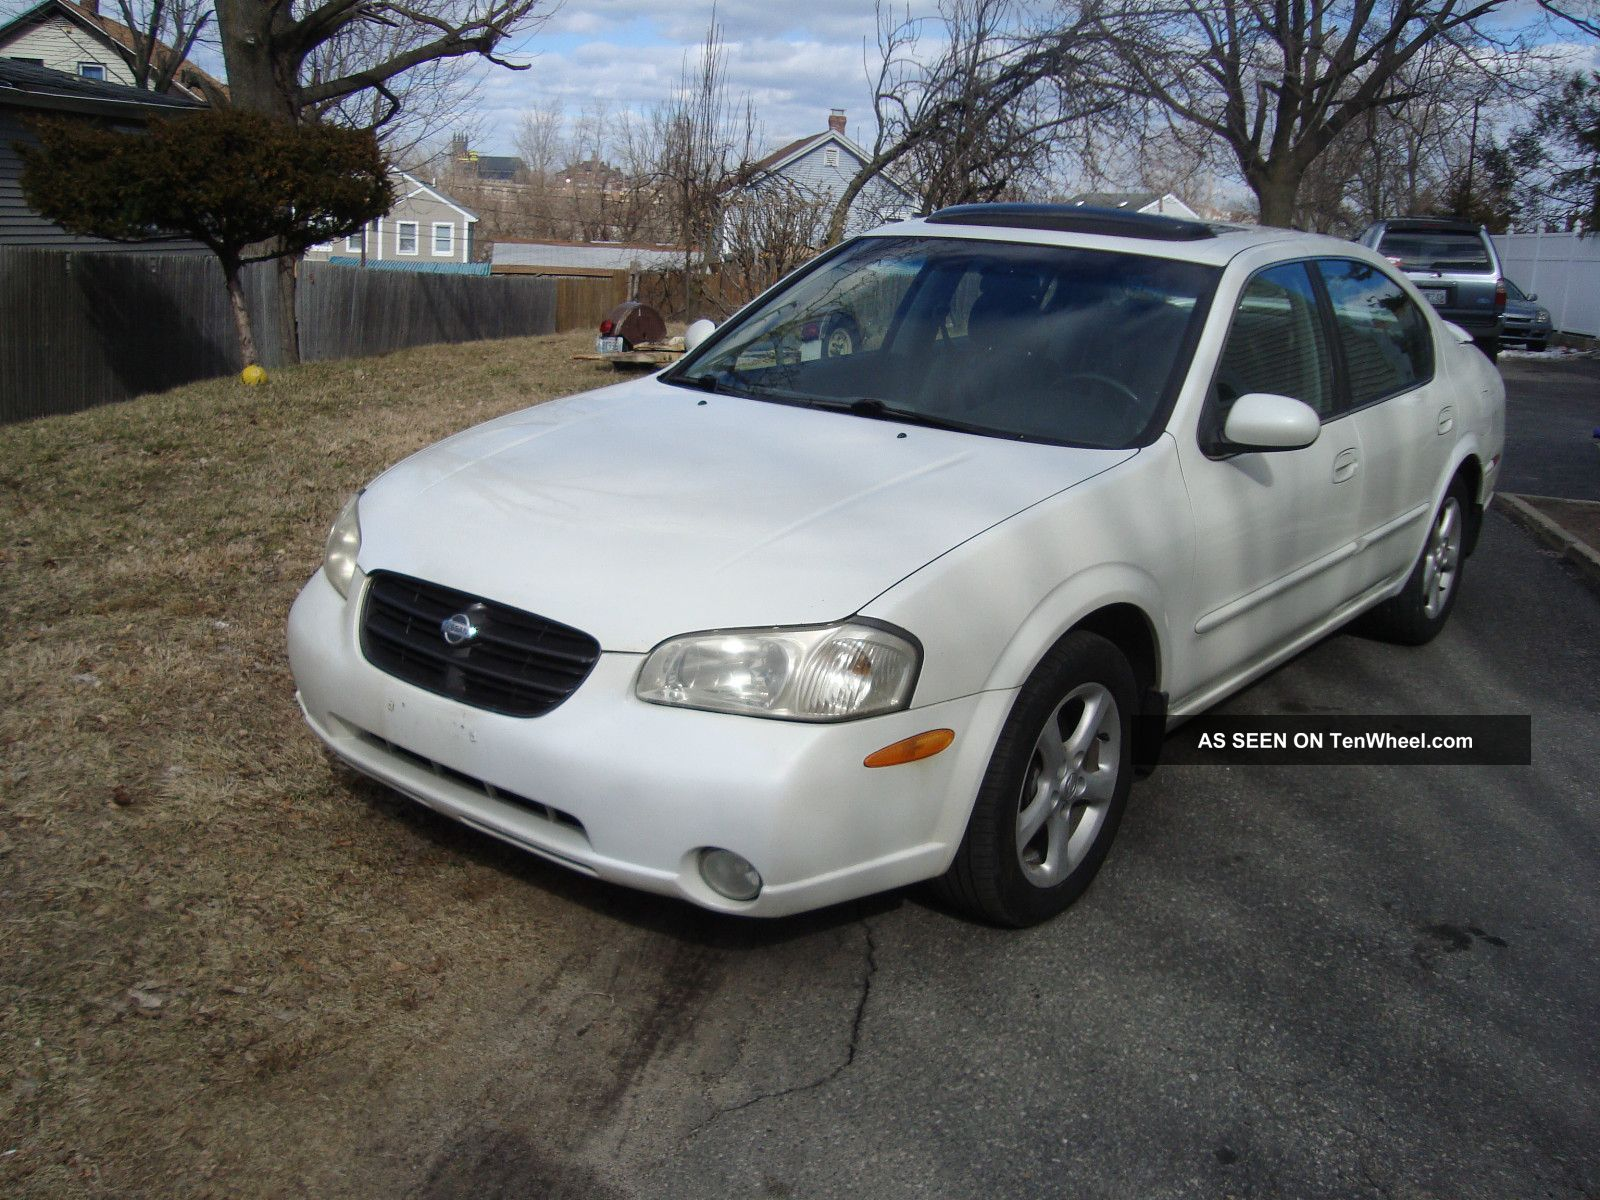 2000 Nissan Maxima Se V6 3 0l Engine Interior Price